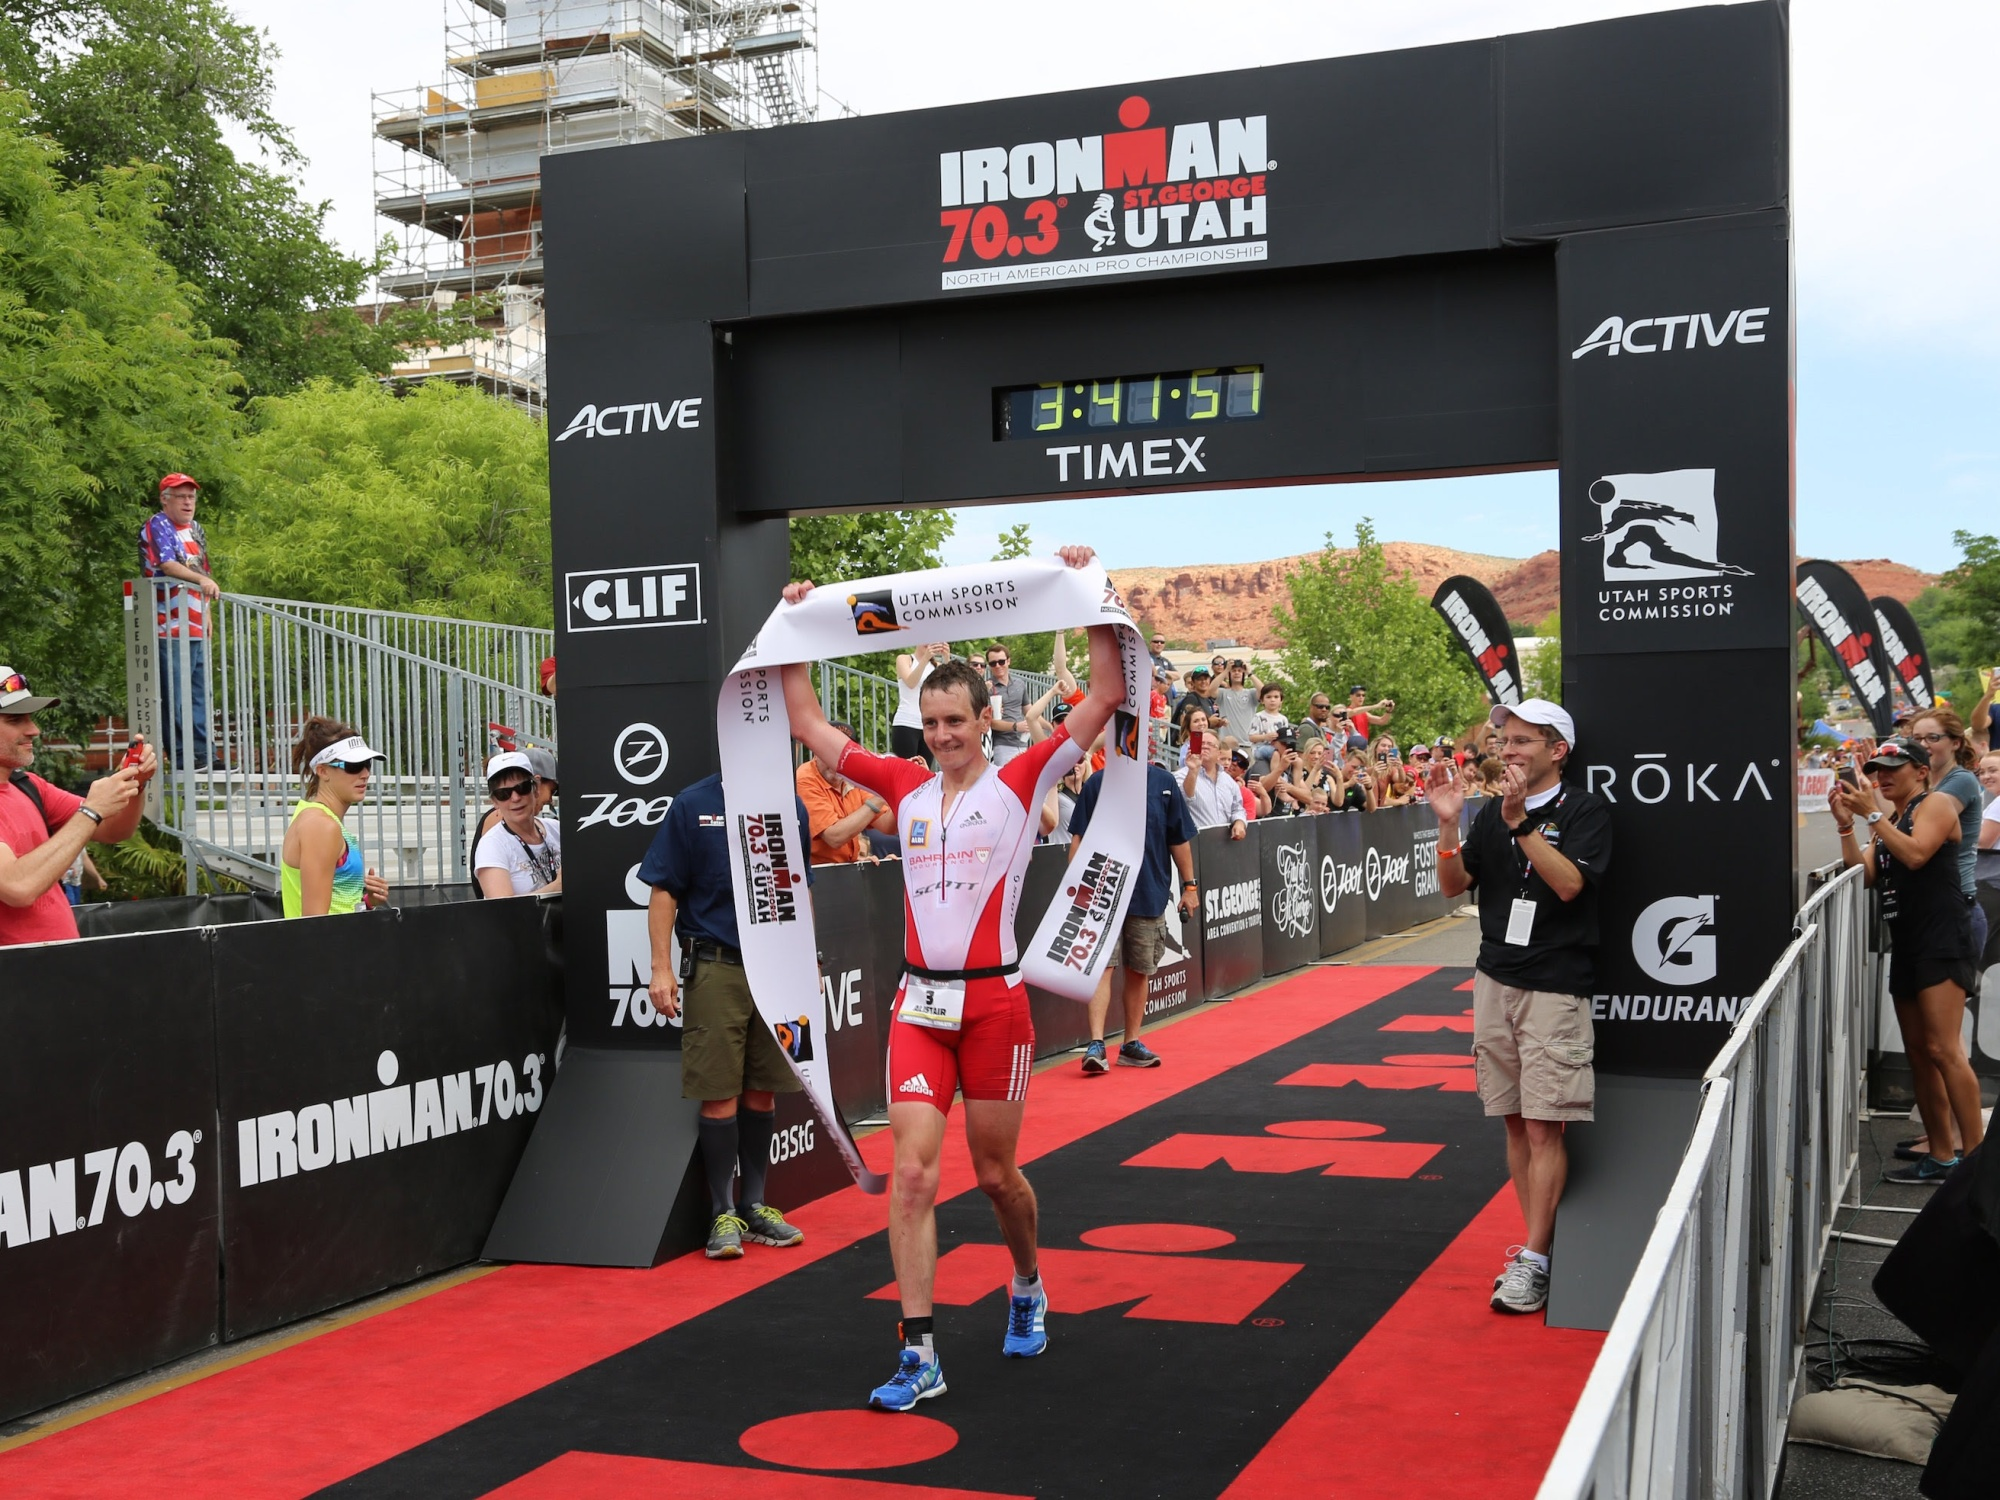 Bahrain Endurance 13, Brownlee triathlon ironman